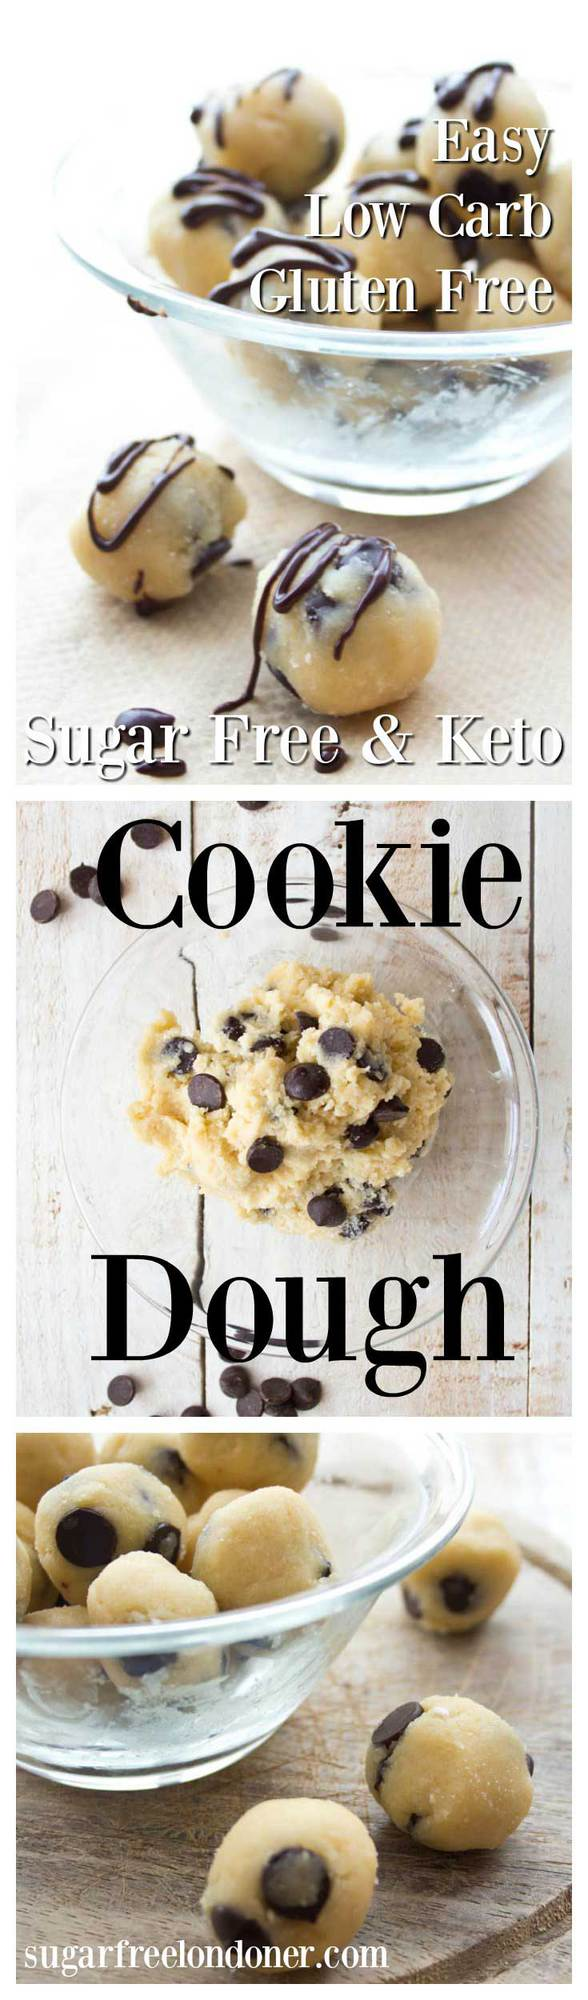 Sugar free low carb cookie dough - a no bake chocolate chip dough that's gluten free and a delicious guilt-free treat. Ready in one minute! #lowcarb #sugarfree #cookiedough #keto #glutenfree #grainfree #diabetic #easyrecipe #snack #cookies